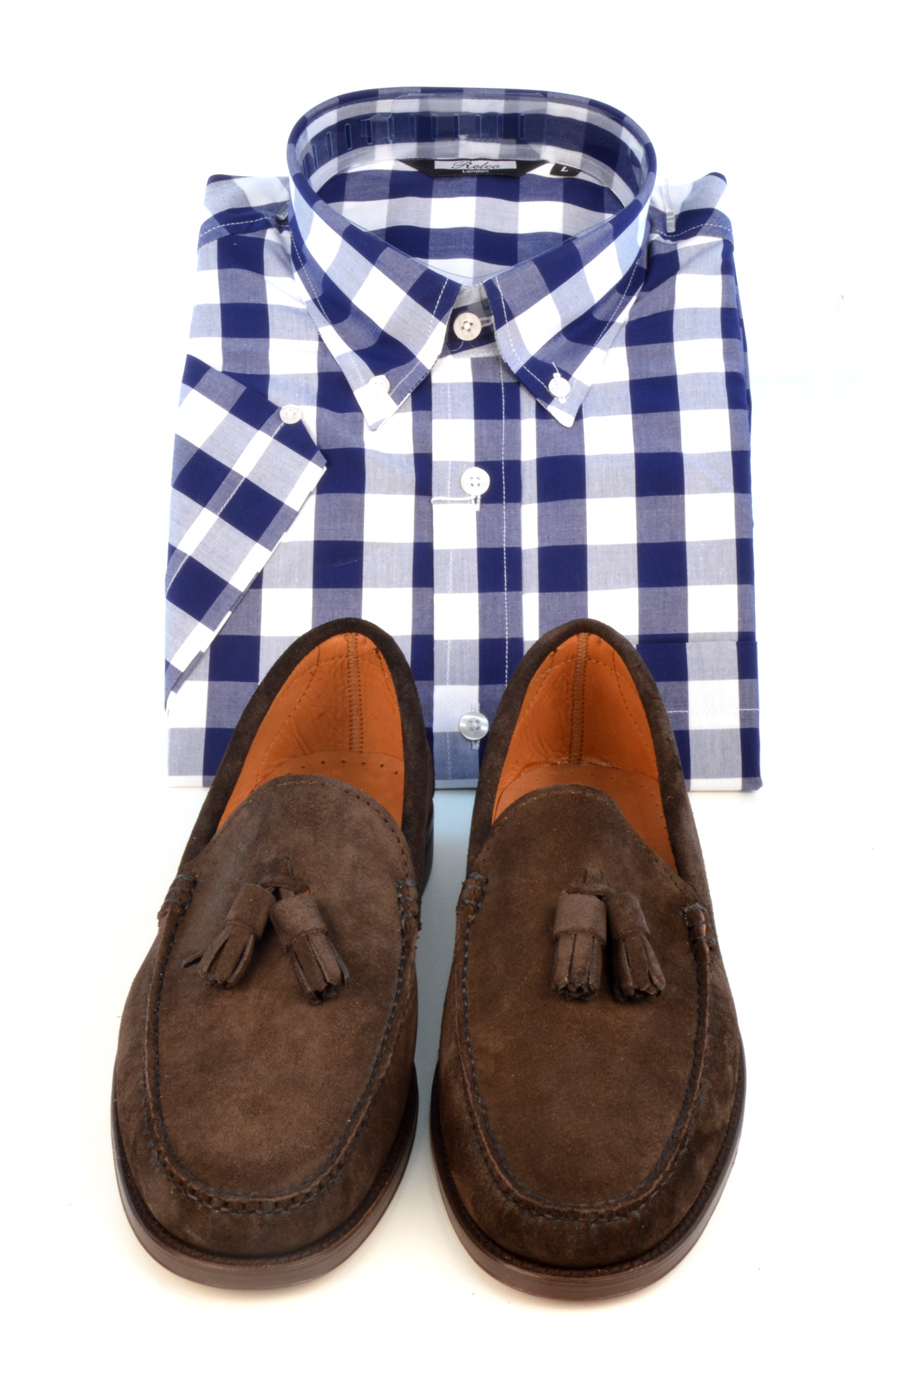 modshoes-check-shirt-and-suede-loafers